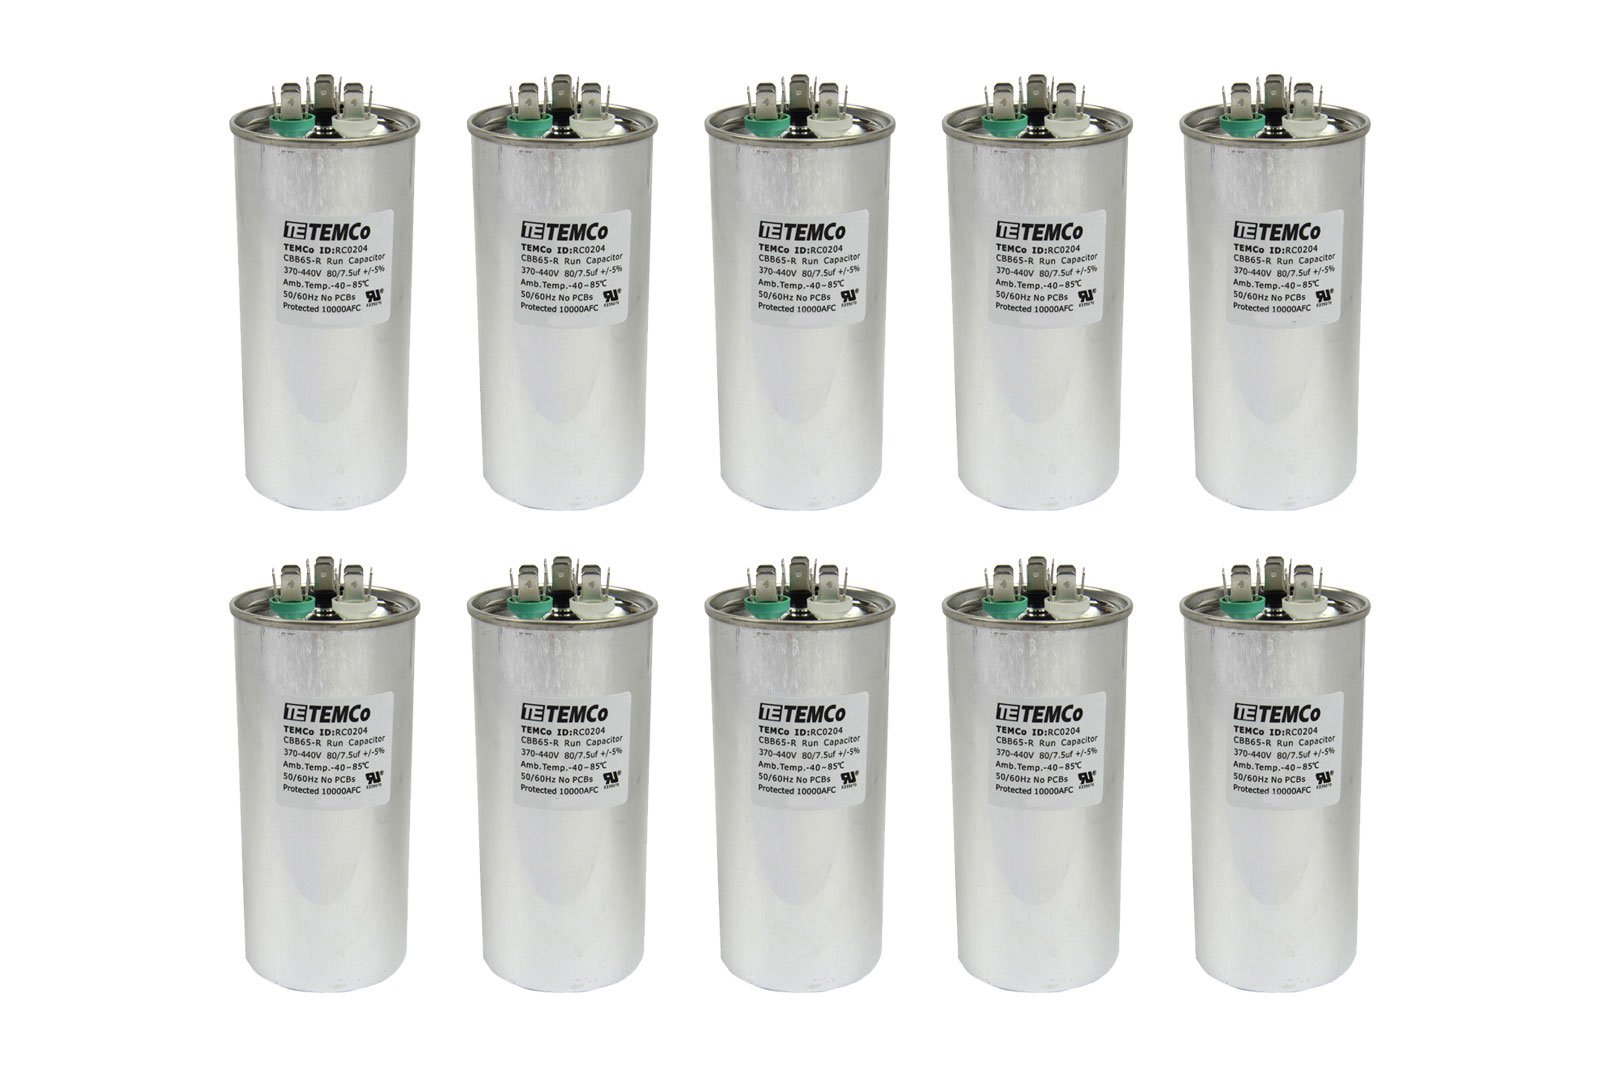 TEMCo 10 LOT Dual Run Capacitor RC0206-80/7.5 mfd 370 V 440 V VAC volt 80+7.5 uf AC Electric Motor HVAC